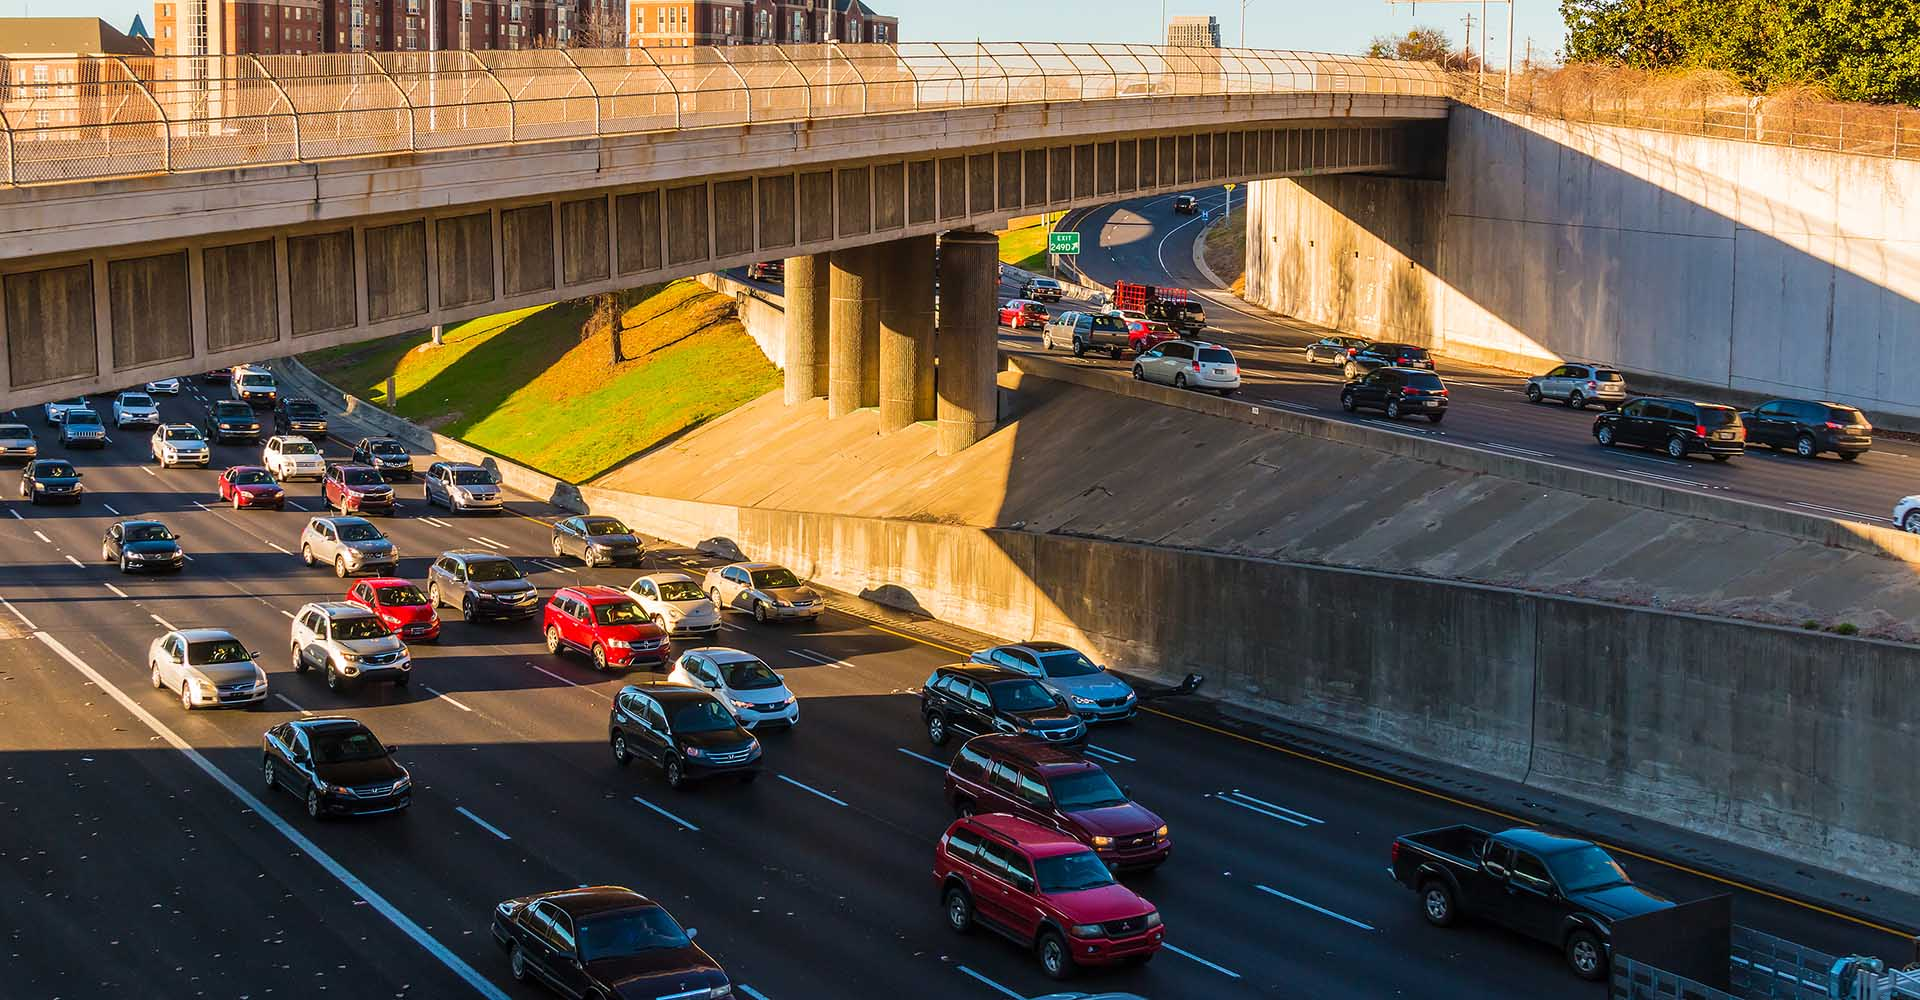 Atlanta Georgia USA. Aerial view of highway with heavy traffic in sunny day.